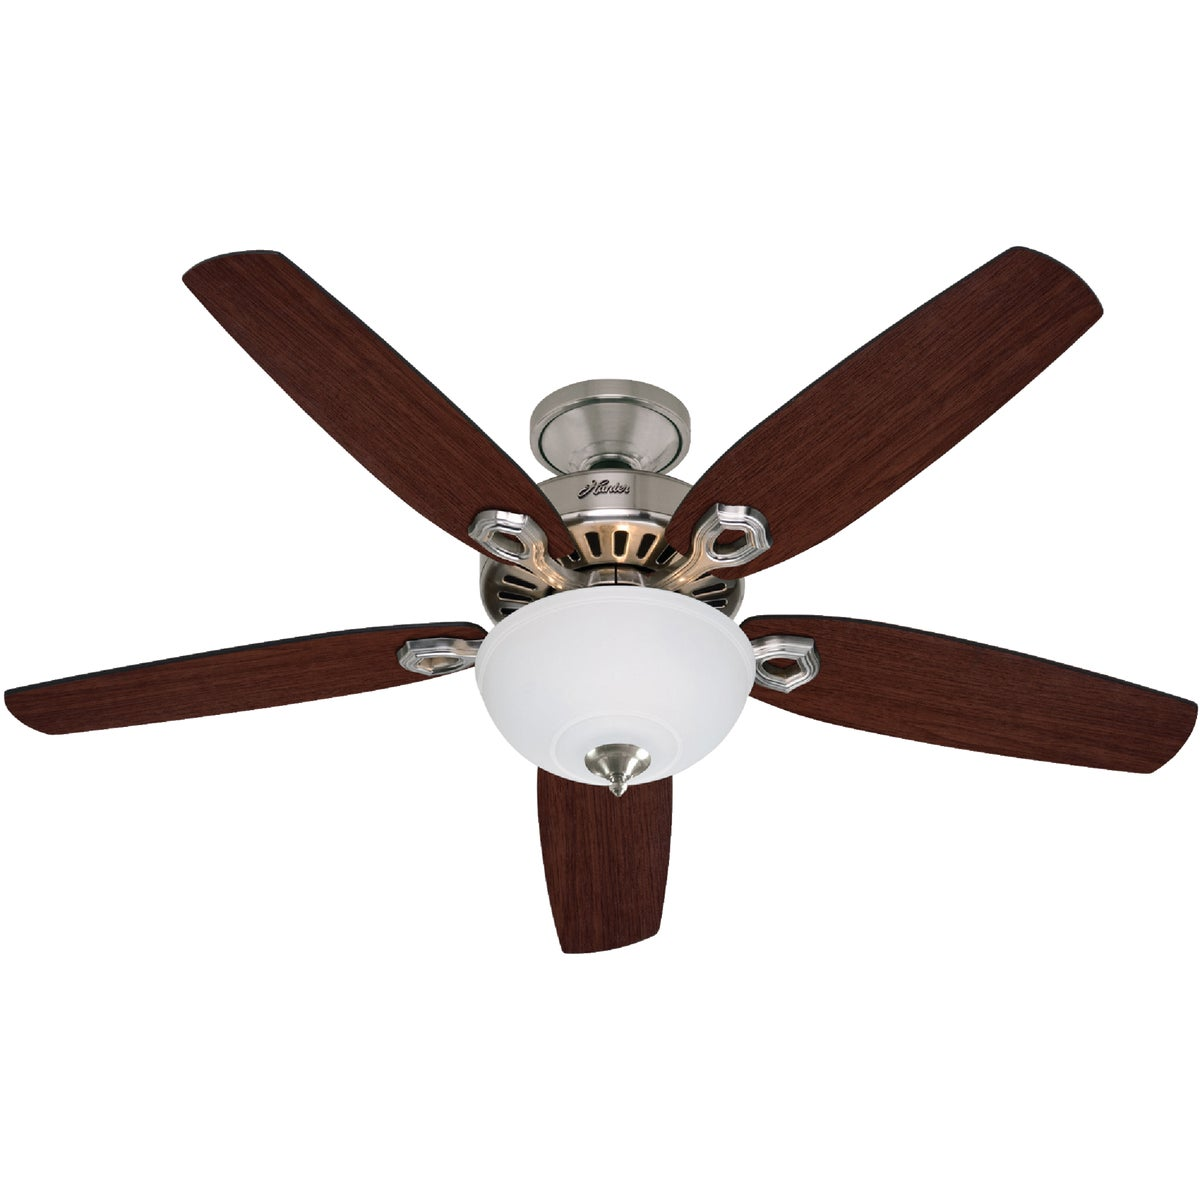 "52"" BR NICKEL FAN W/LT - 53090 by Hunter Fan Co"